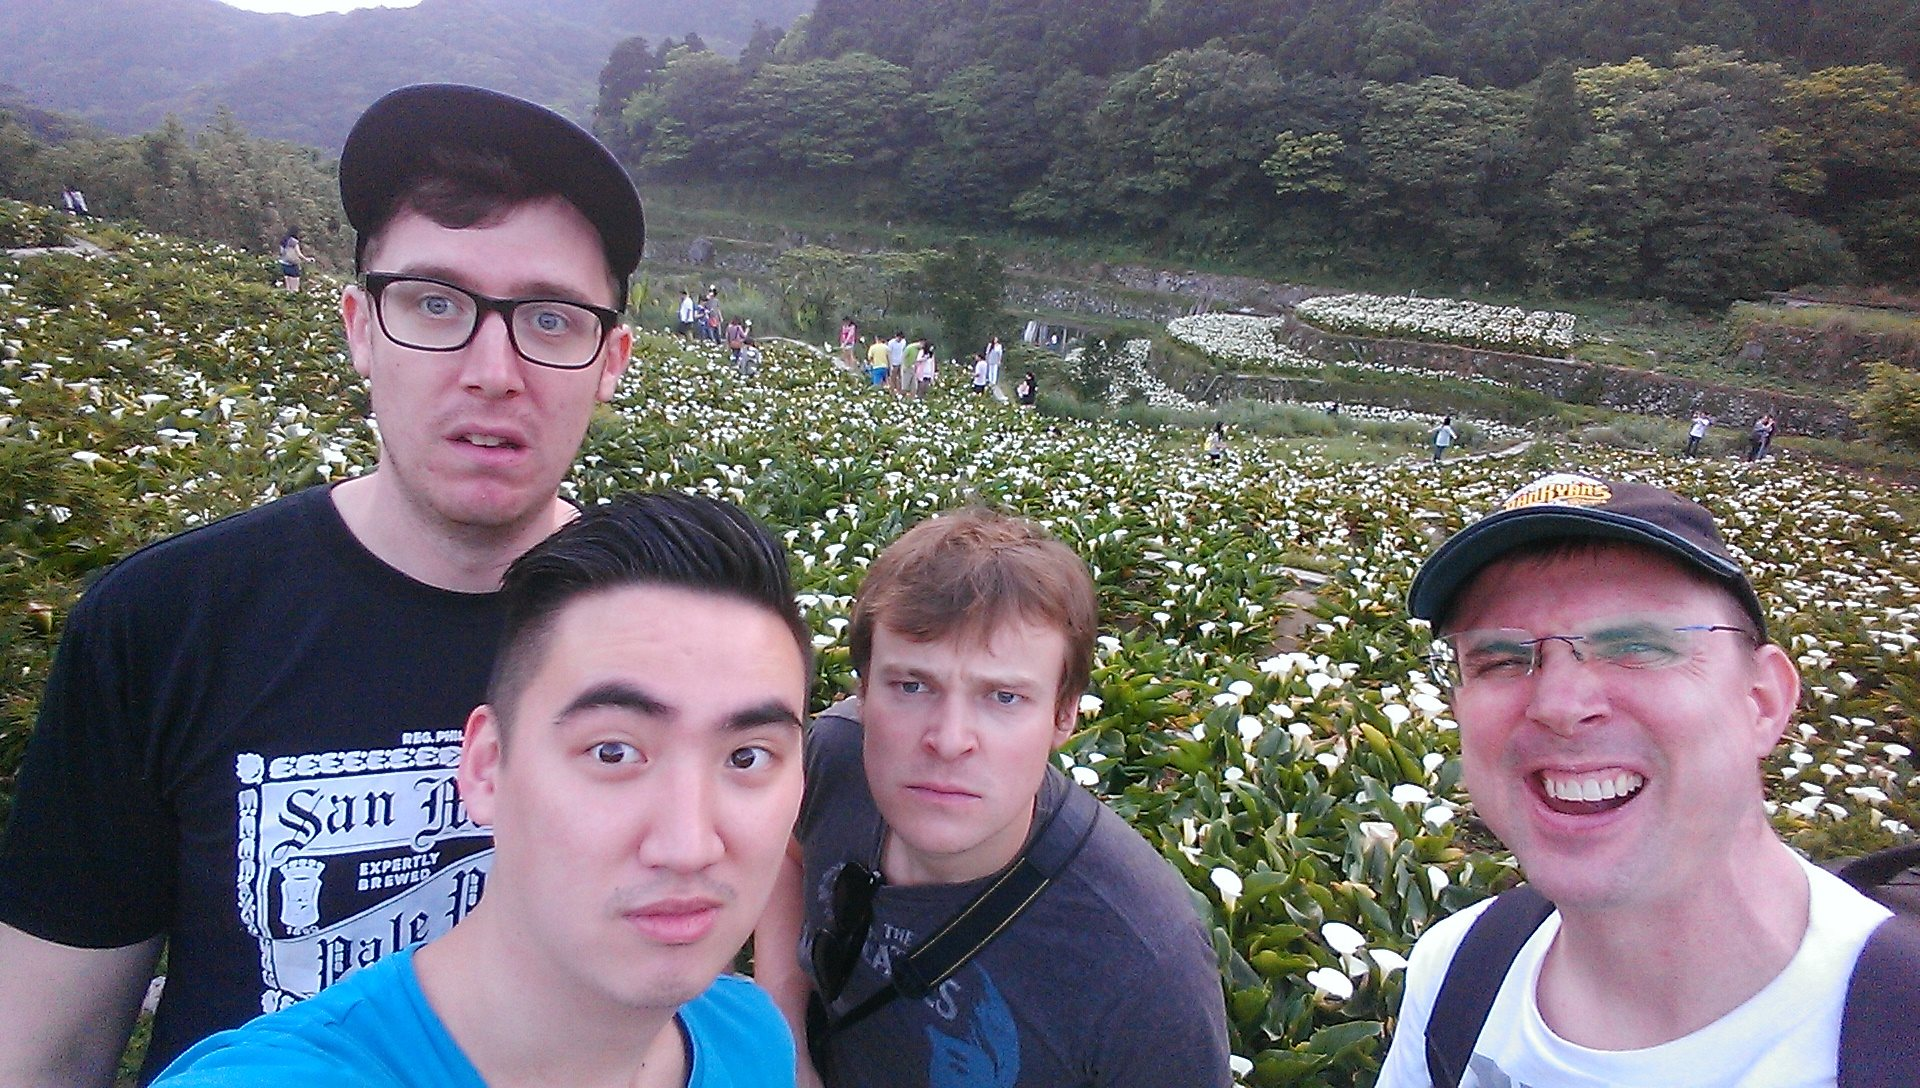 Took a hike with some comics to go see the tulips bloom in Taipei before our Taiwan debut. Because we're very manly people.